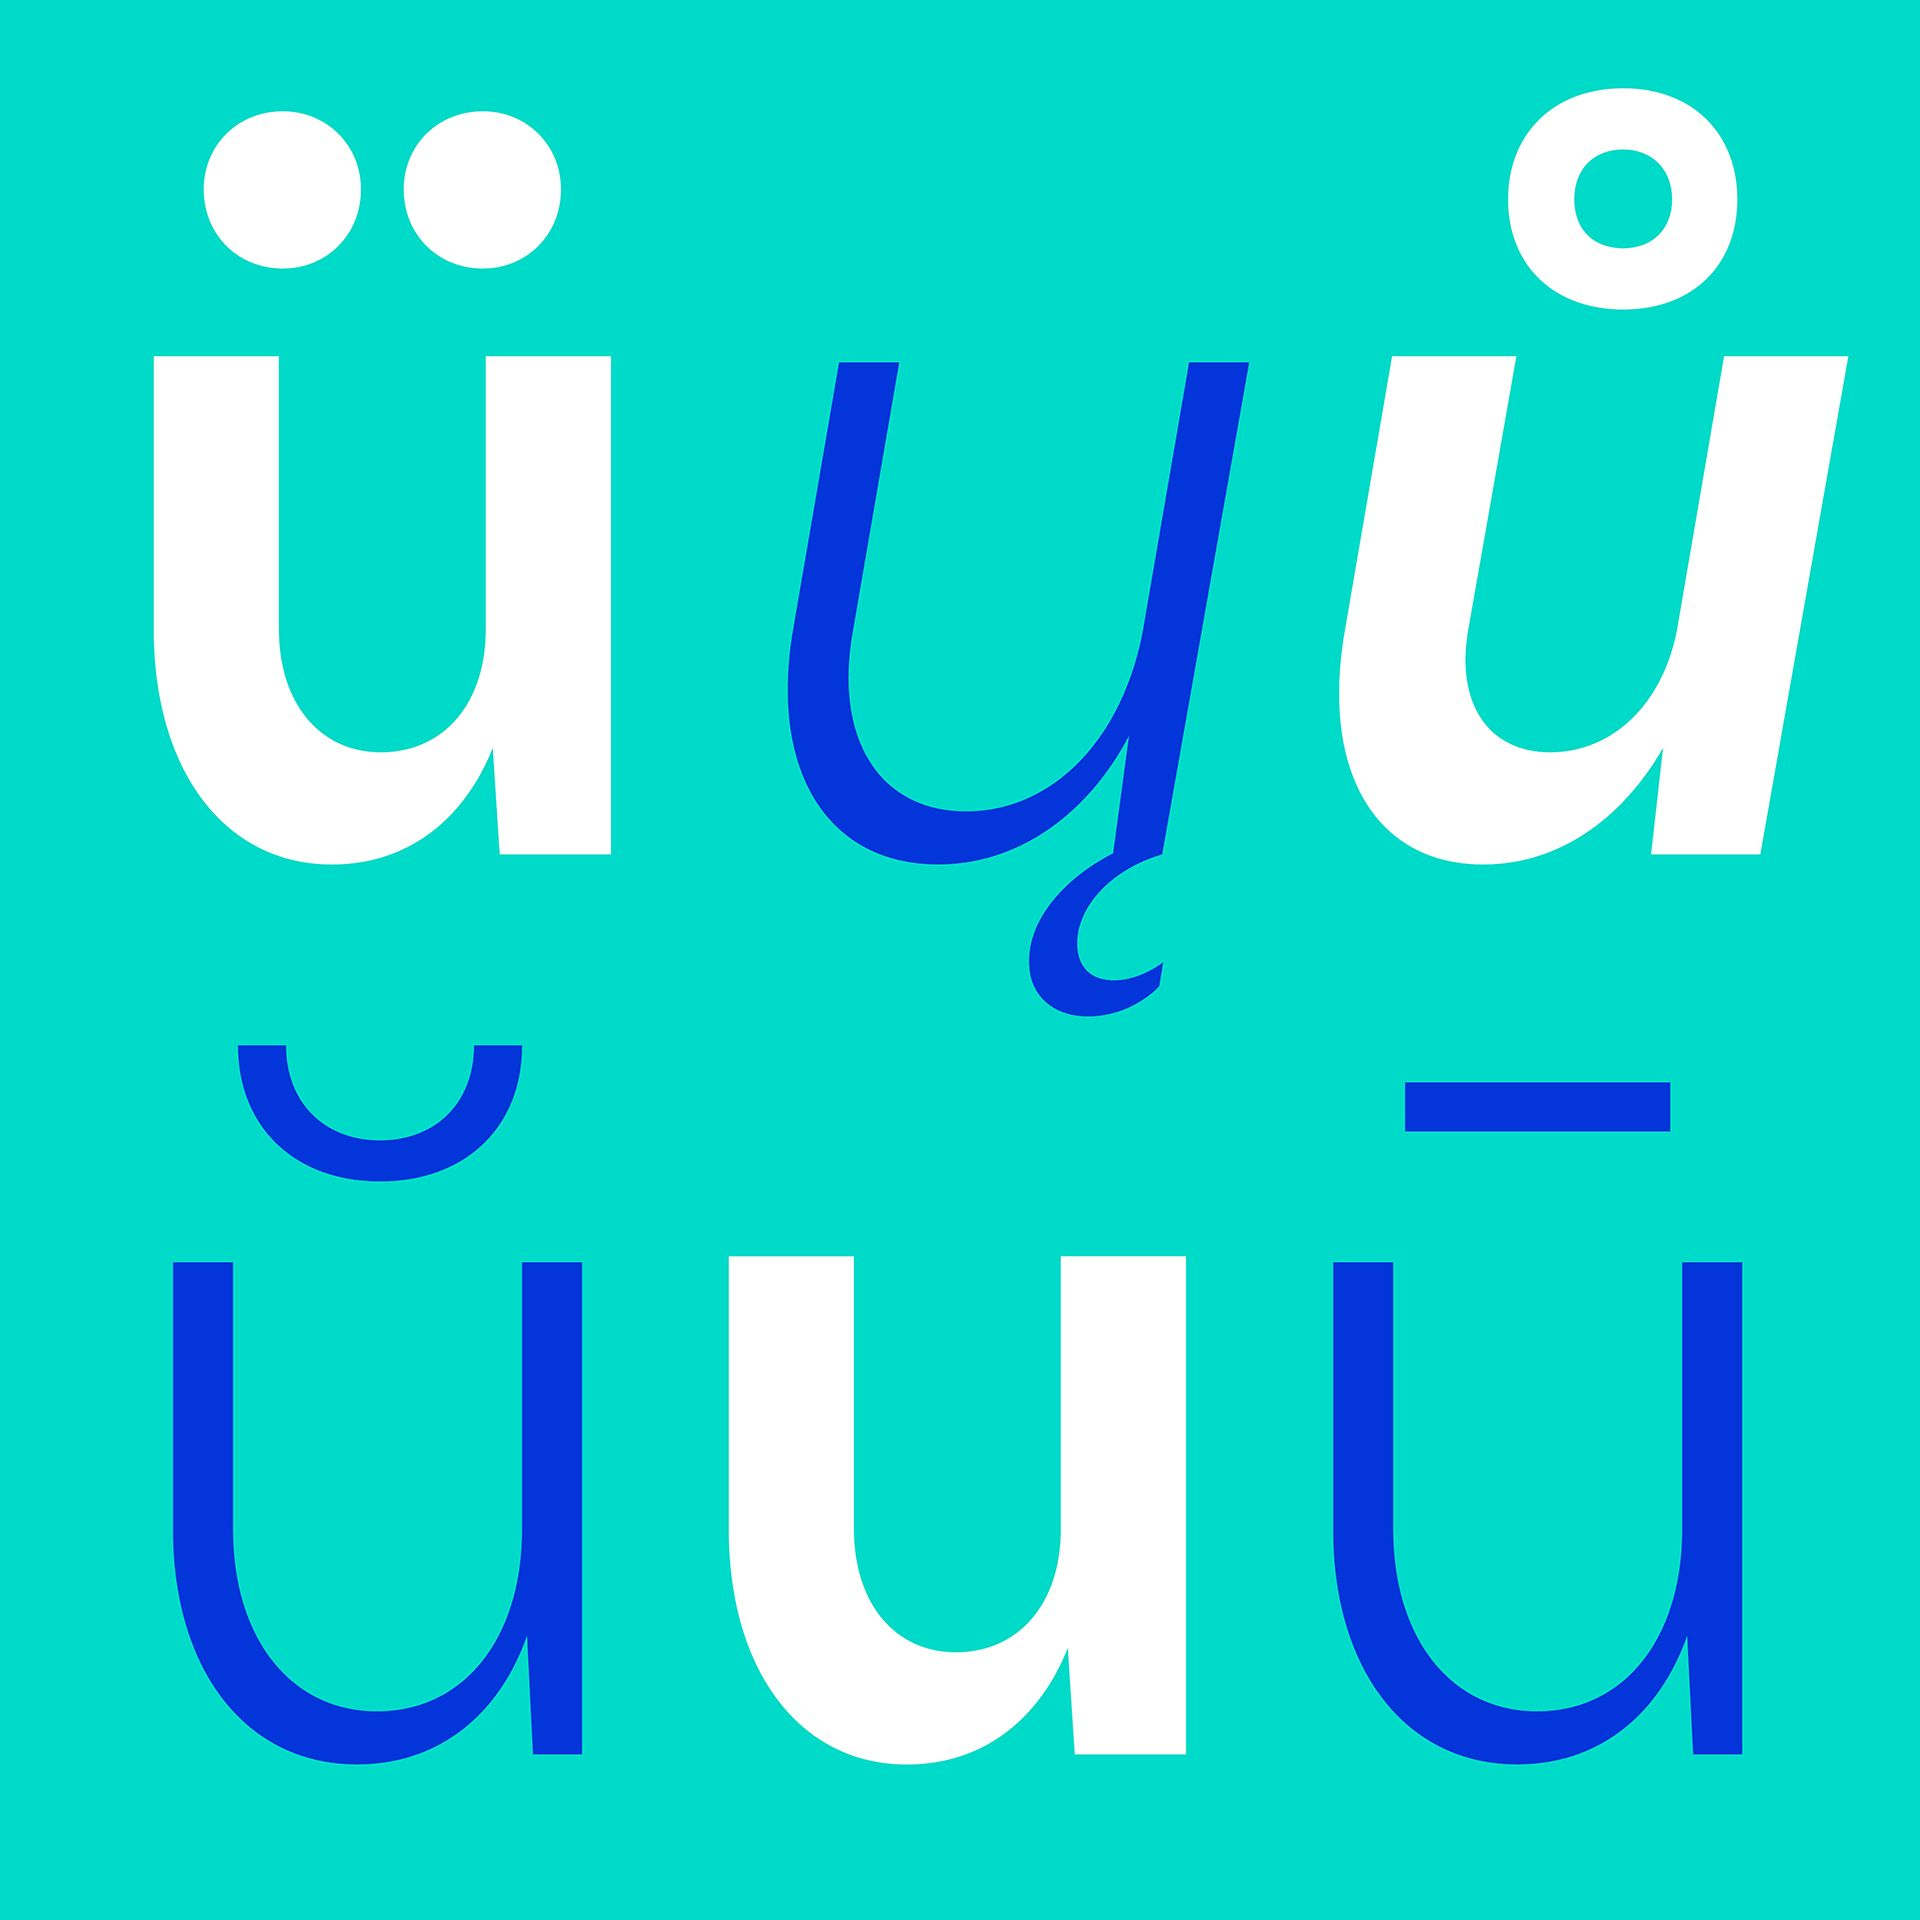 Uivo - Over 400 glyphs, supporting 48 languages